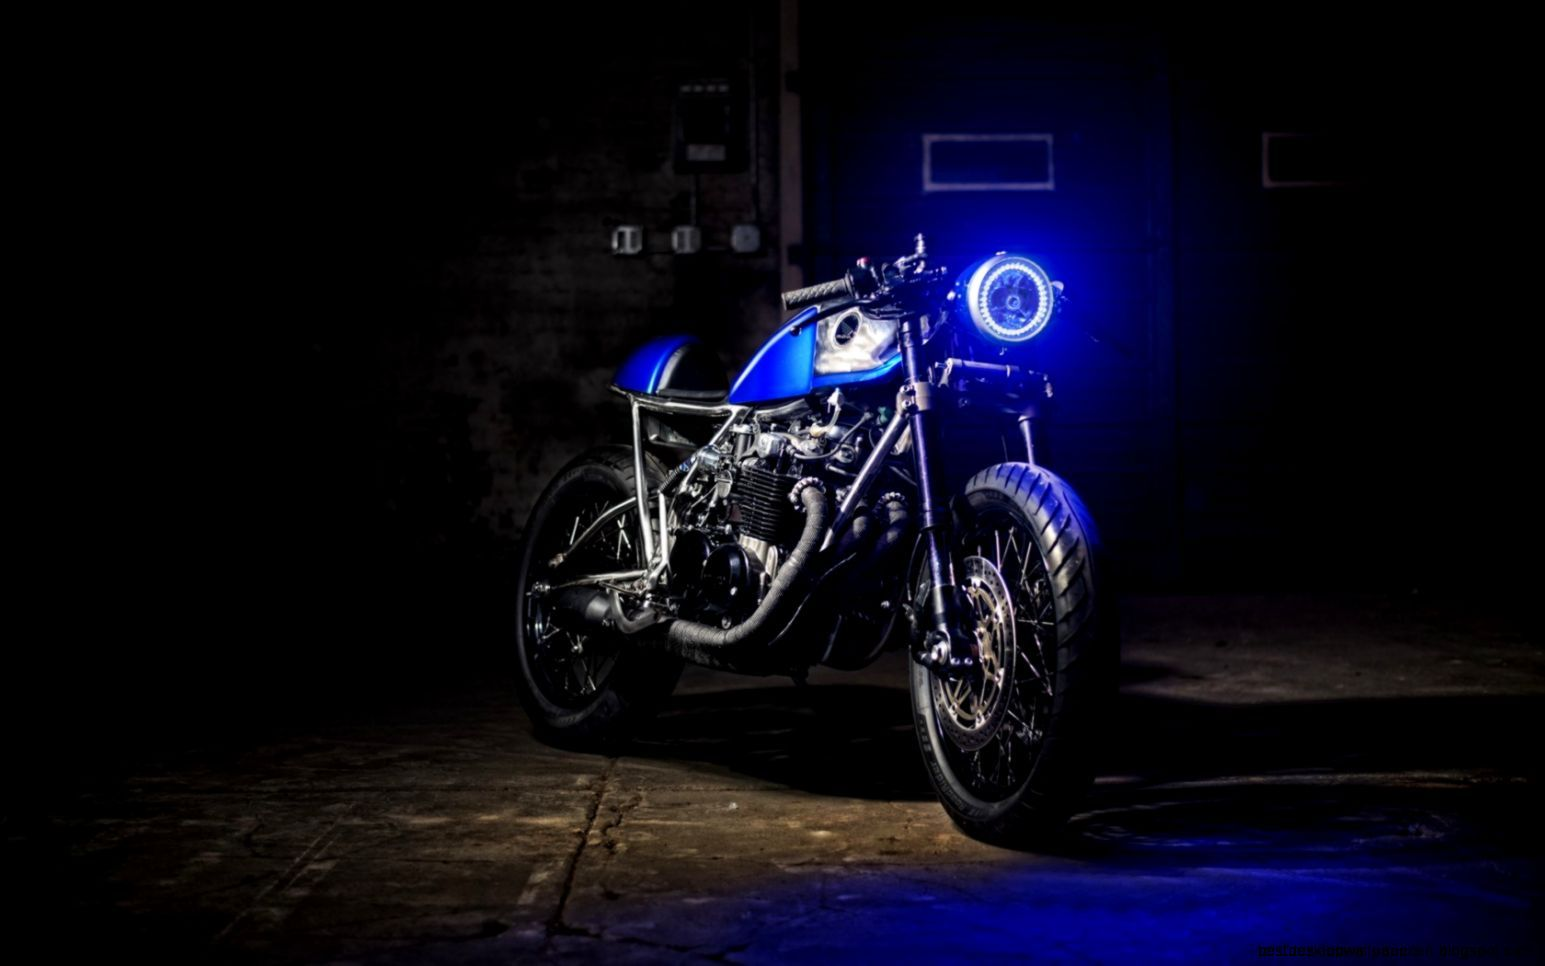 Vintage Motorcycle Wallpapers High Resolution Motorcycle Wallpaper Blue Motorcycle Classic Motorcycles